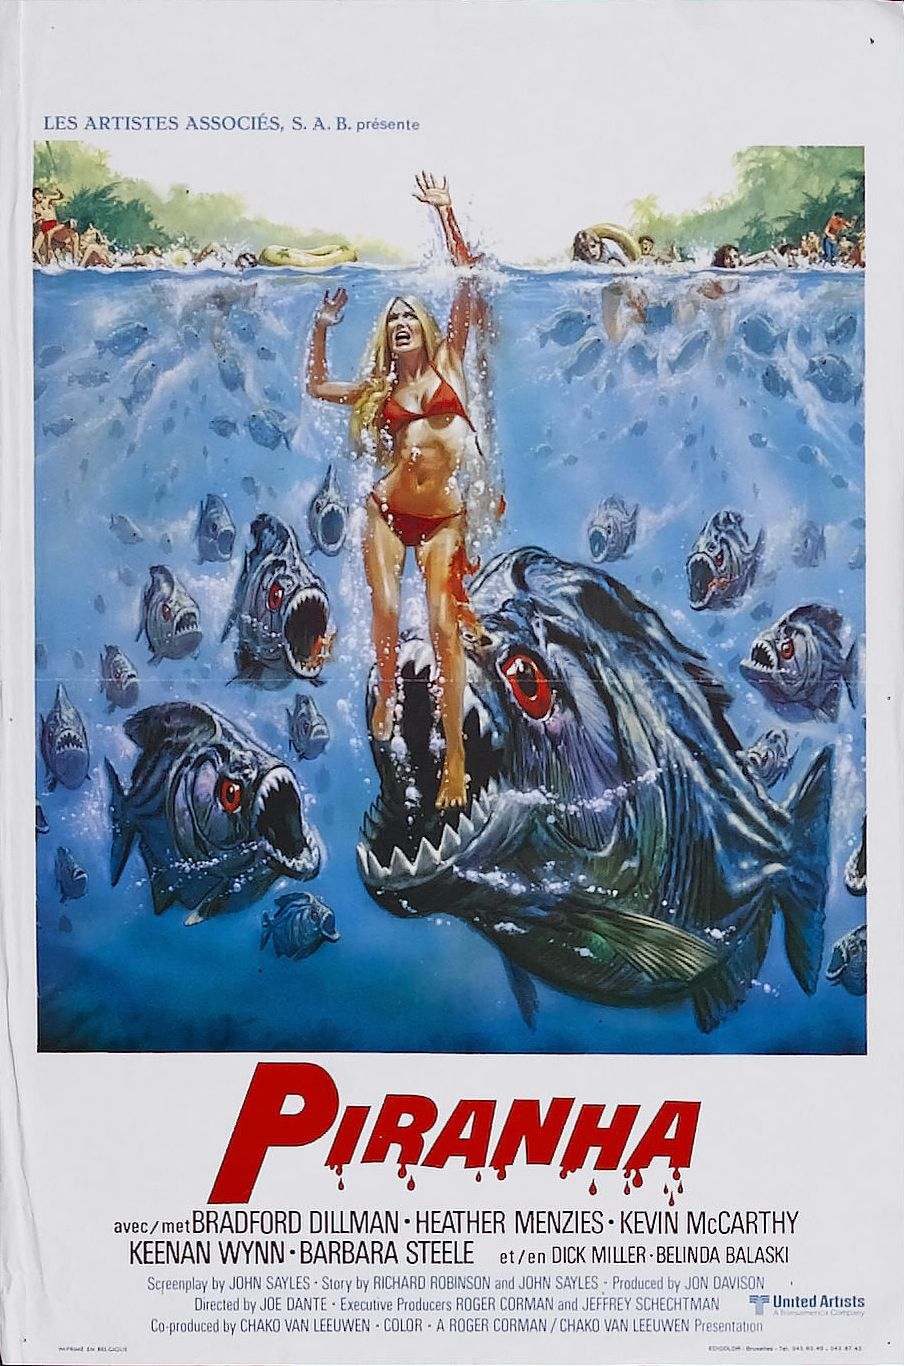 https://i1.wp.com/www.arte.tv/sites/fr/olivierpere/files/2013/04/piranha_poster_02.jpg